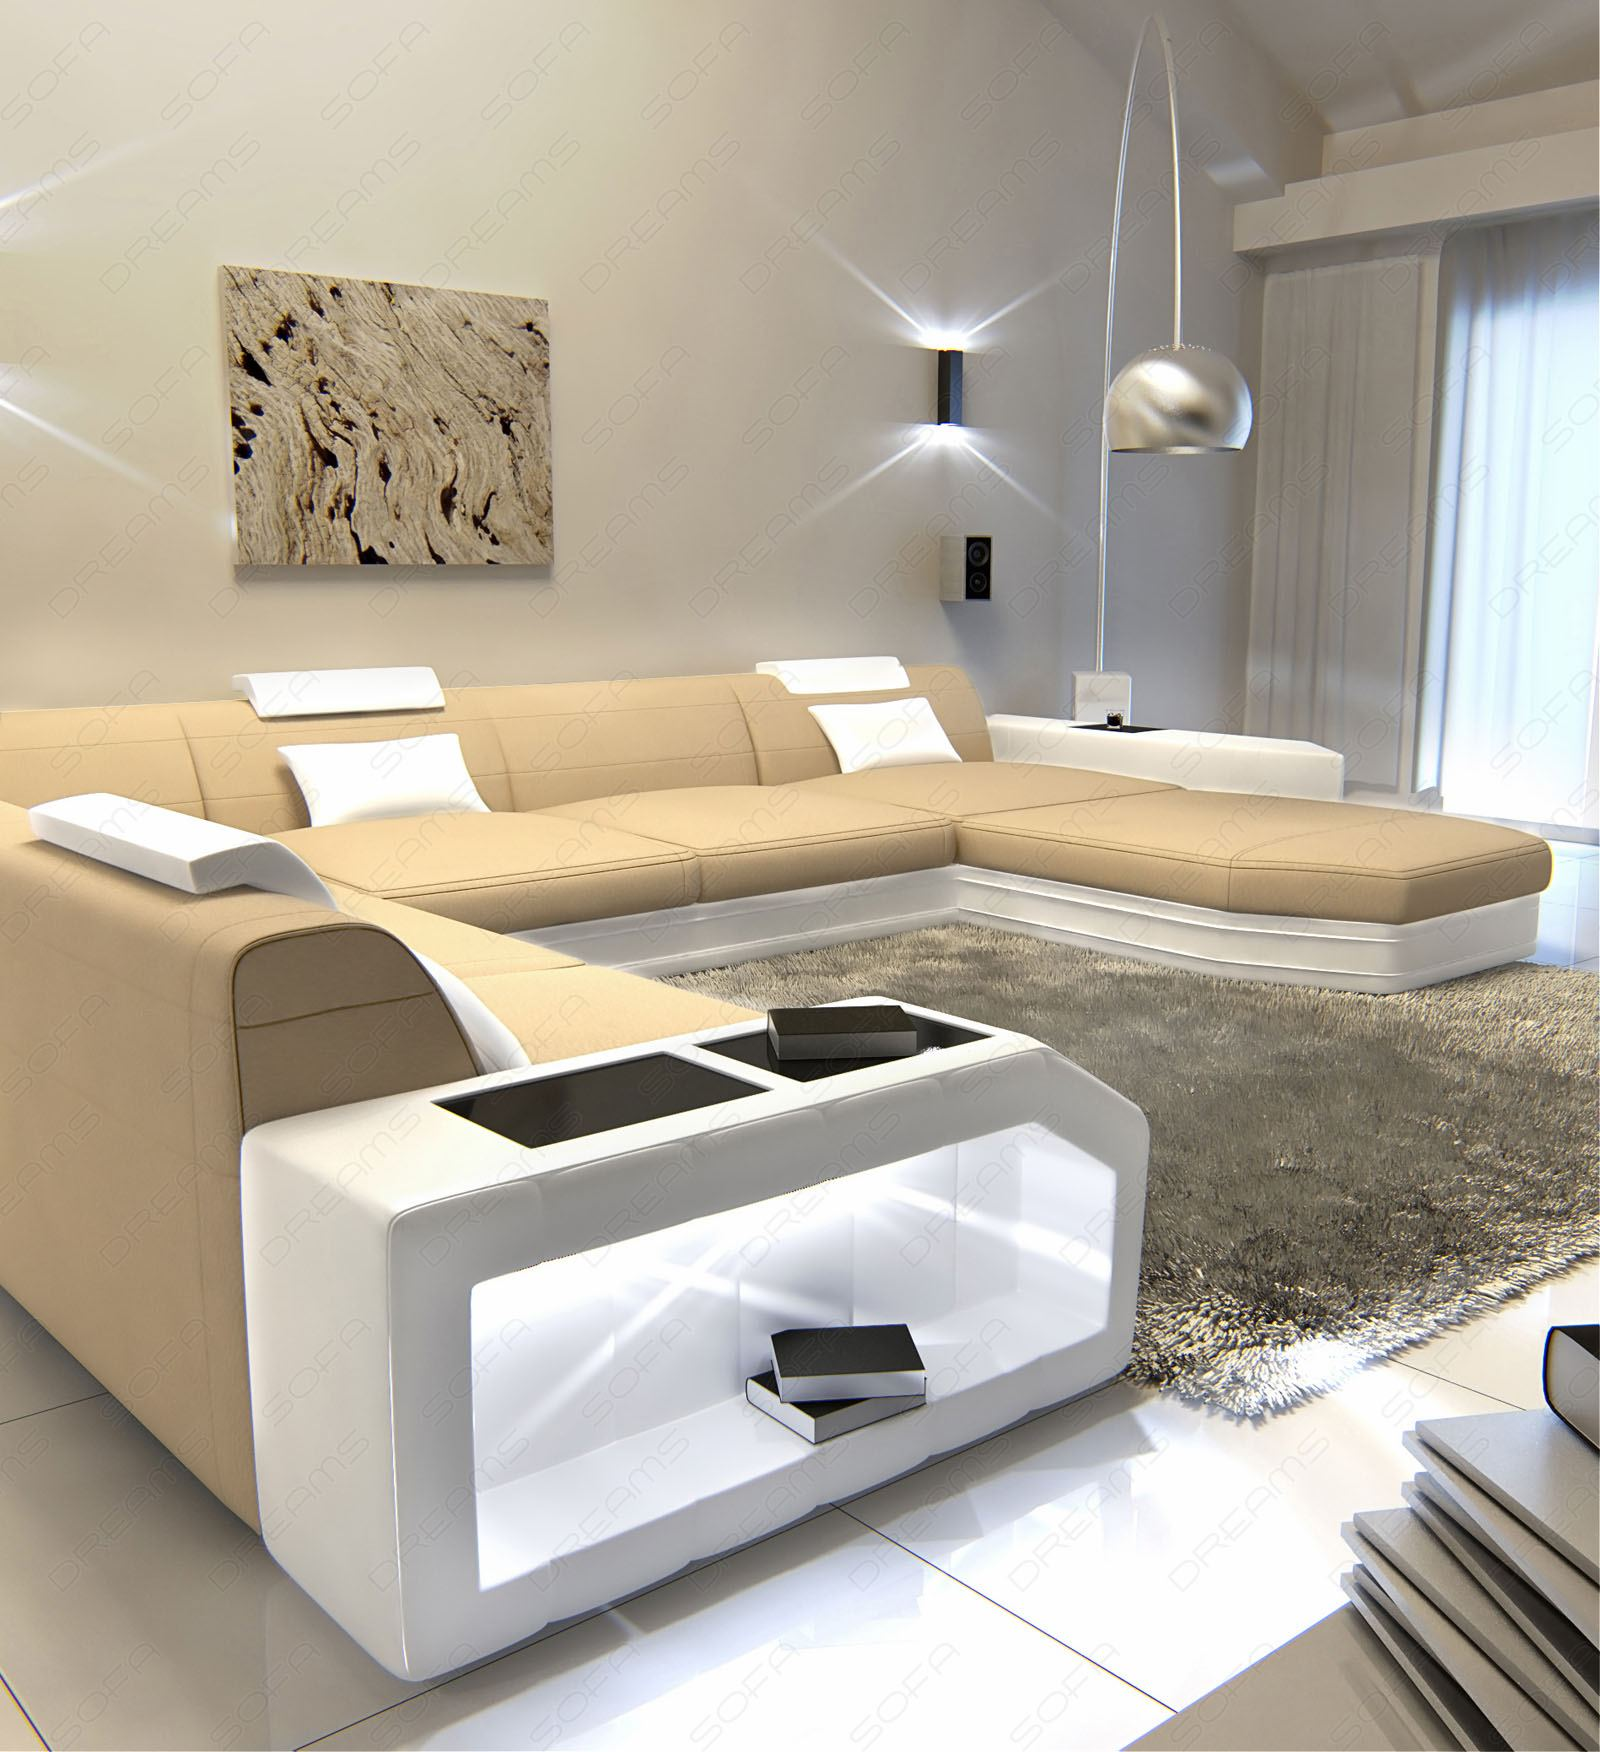 livingroom landscape prato u shaped fabric sofa white beige ebay. Black Bedroom Furniture Sets. Home Design Ideas